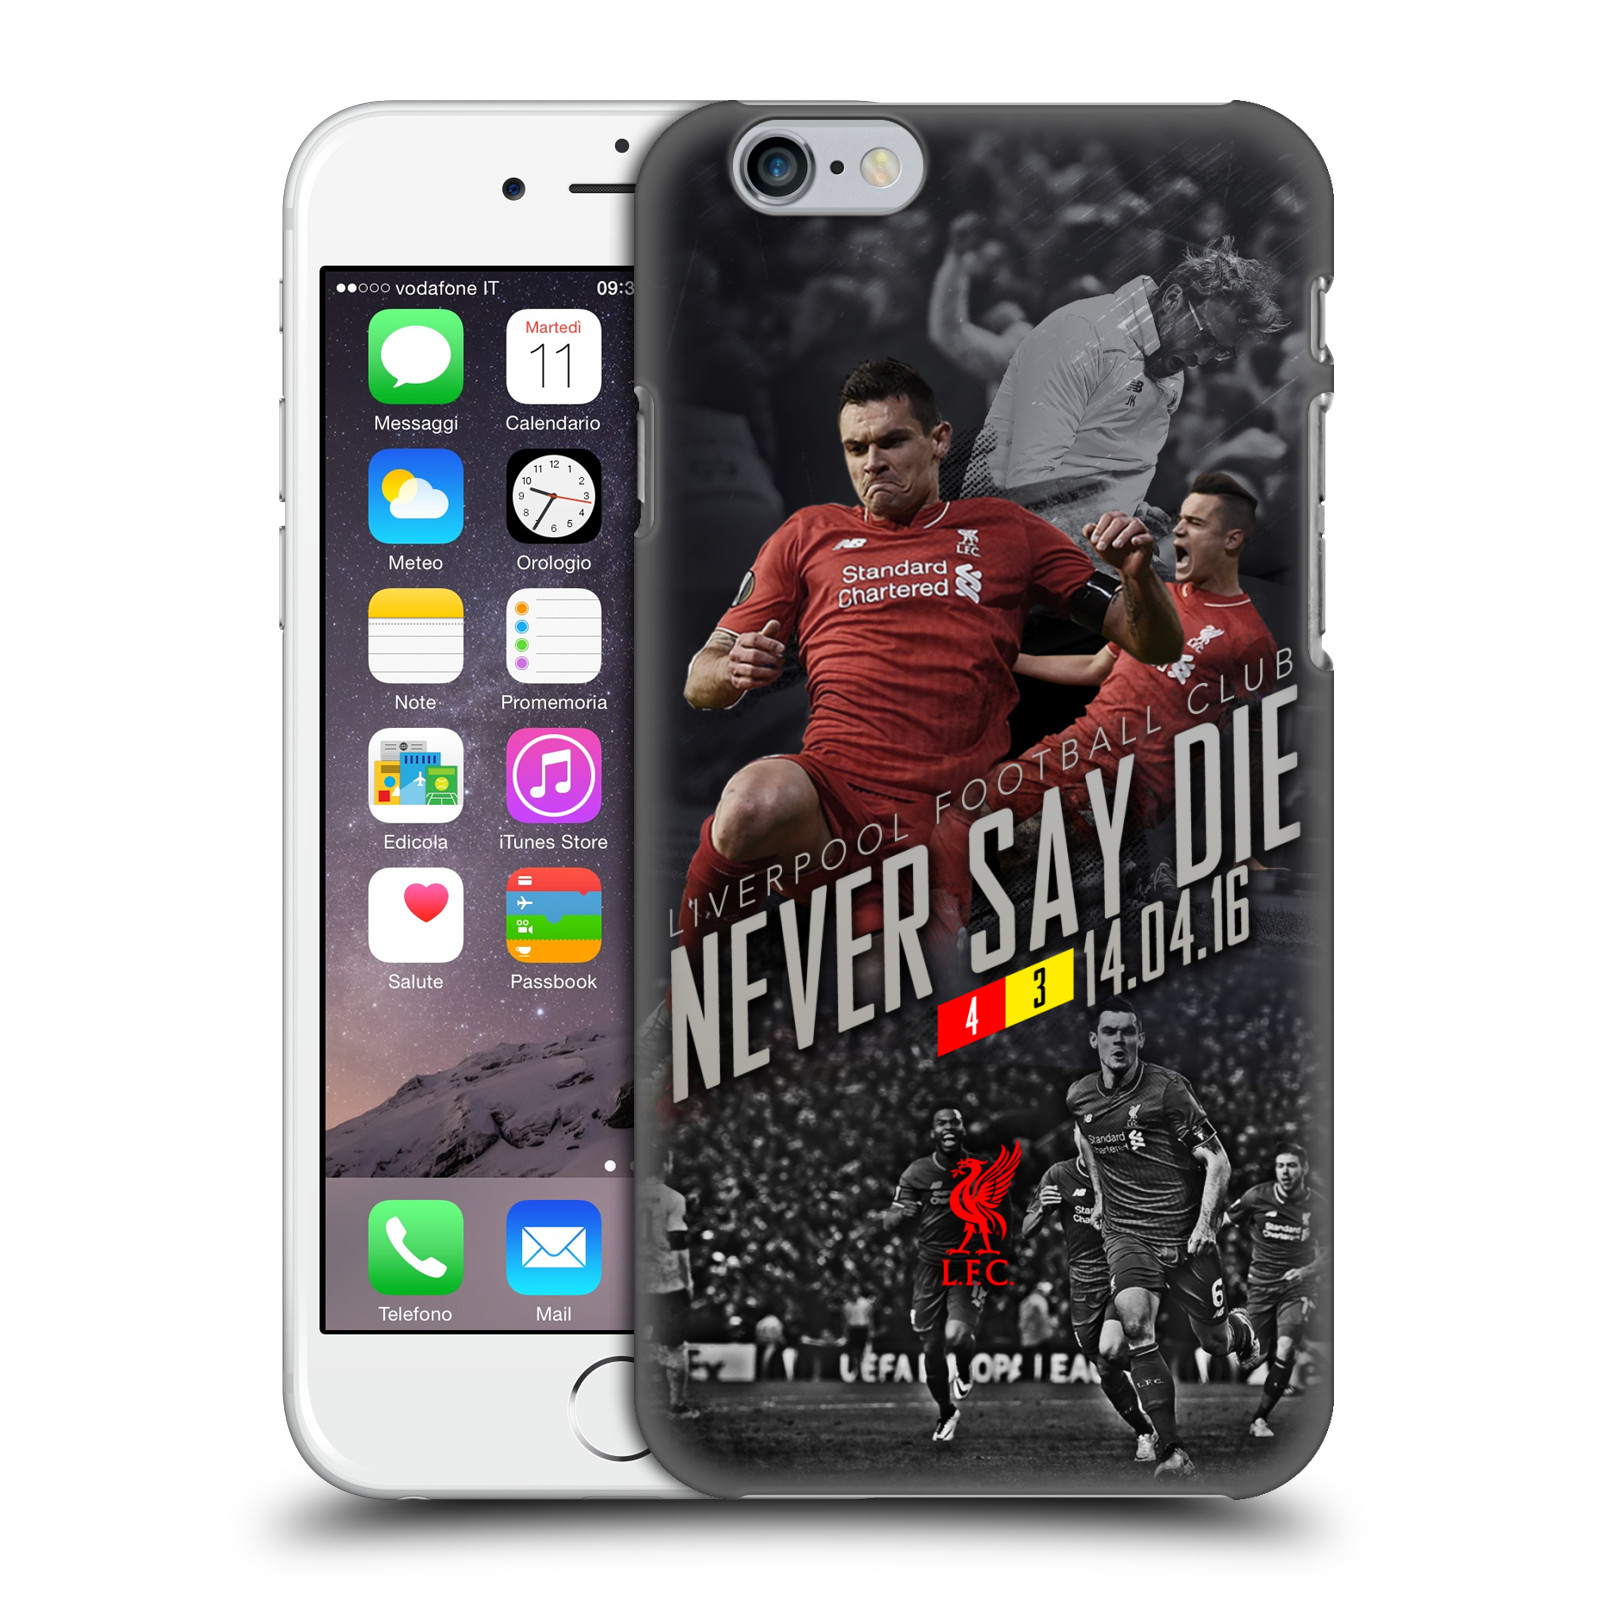 Liverpool FC LFC Anfield Magic-Never Say Die